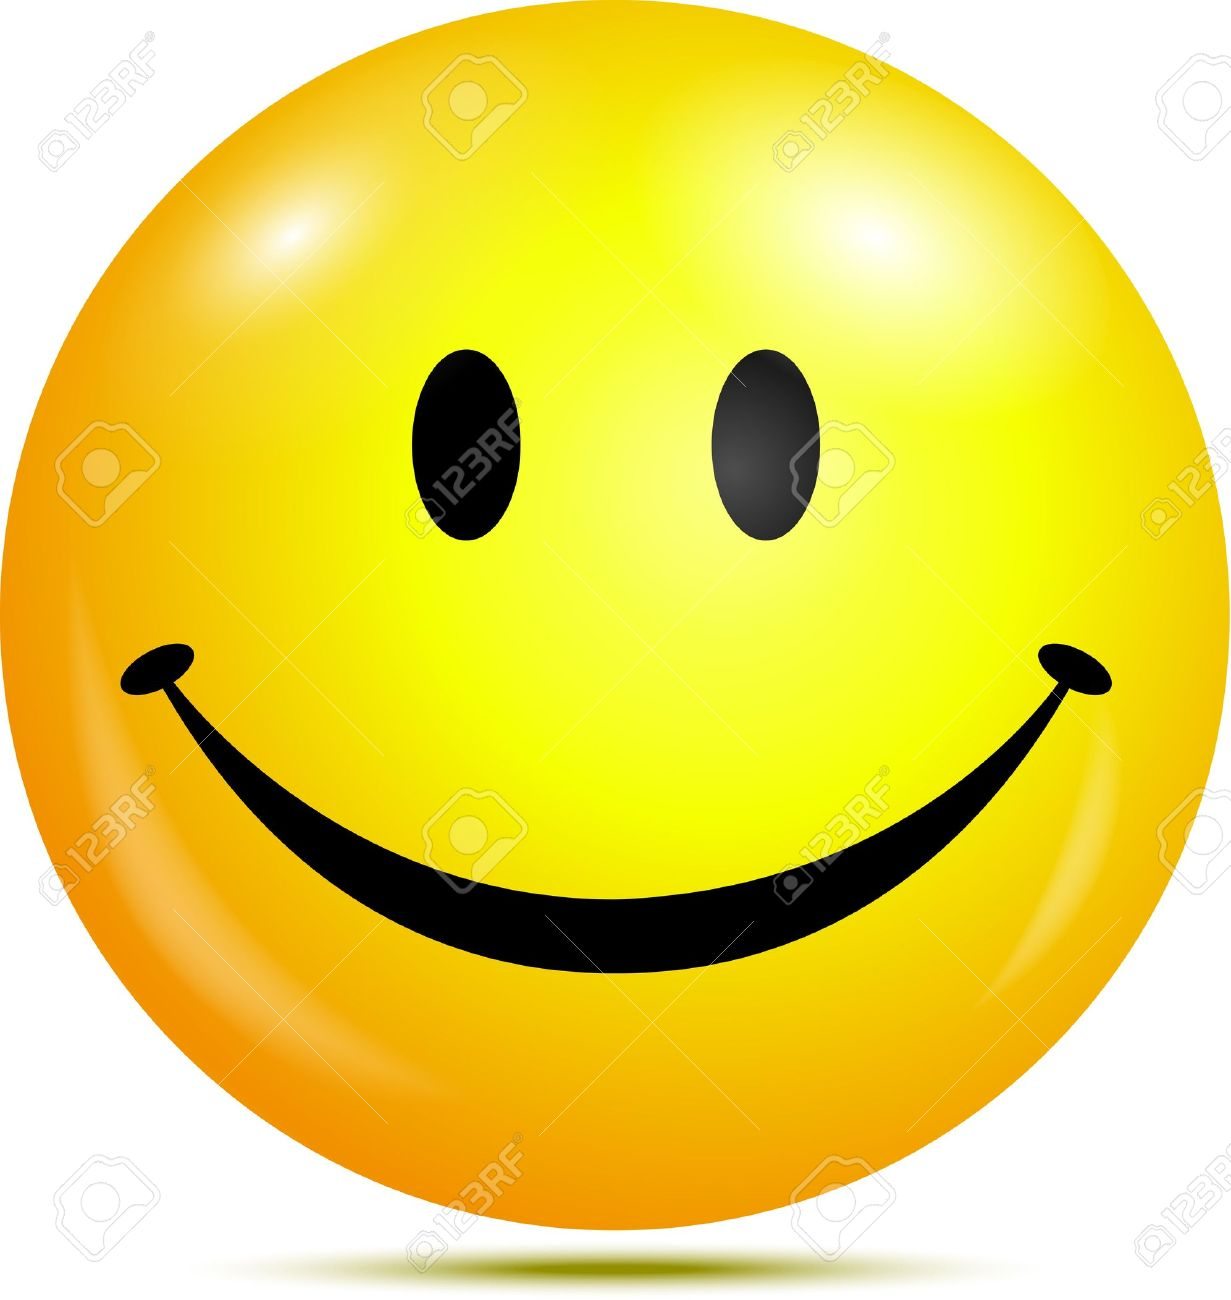 happy smiley face royalty free cliparts vectors and stock rh 123rf com smile vector smiley vectoriel gratuit